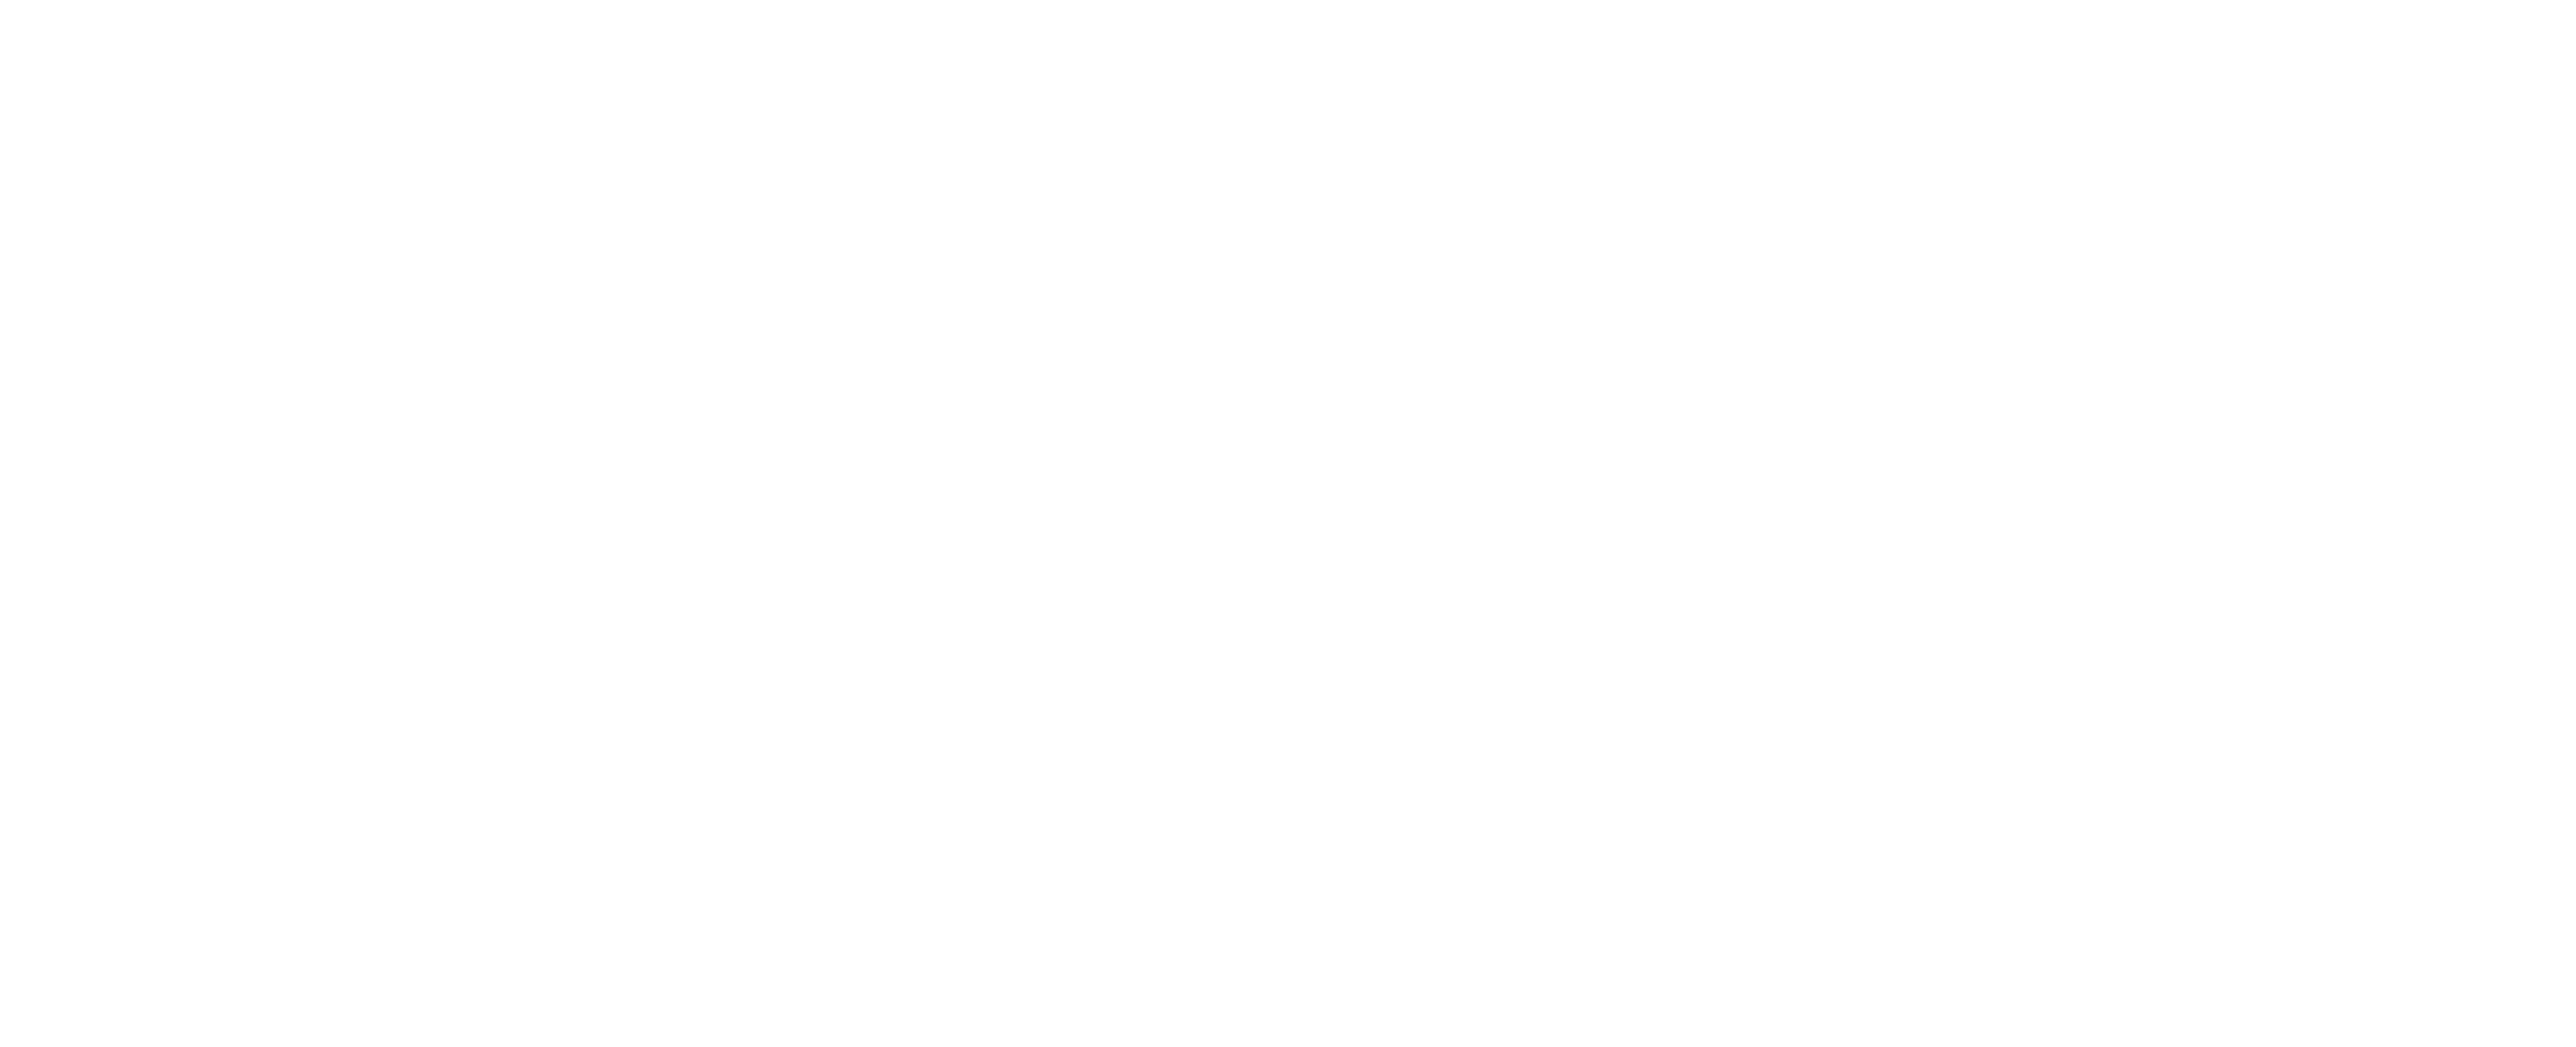 Anticorruption Center